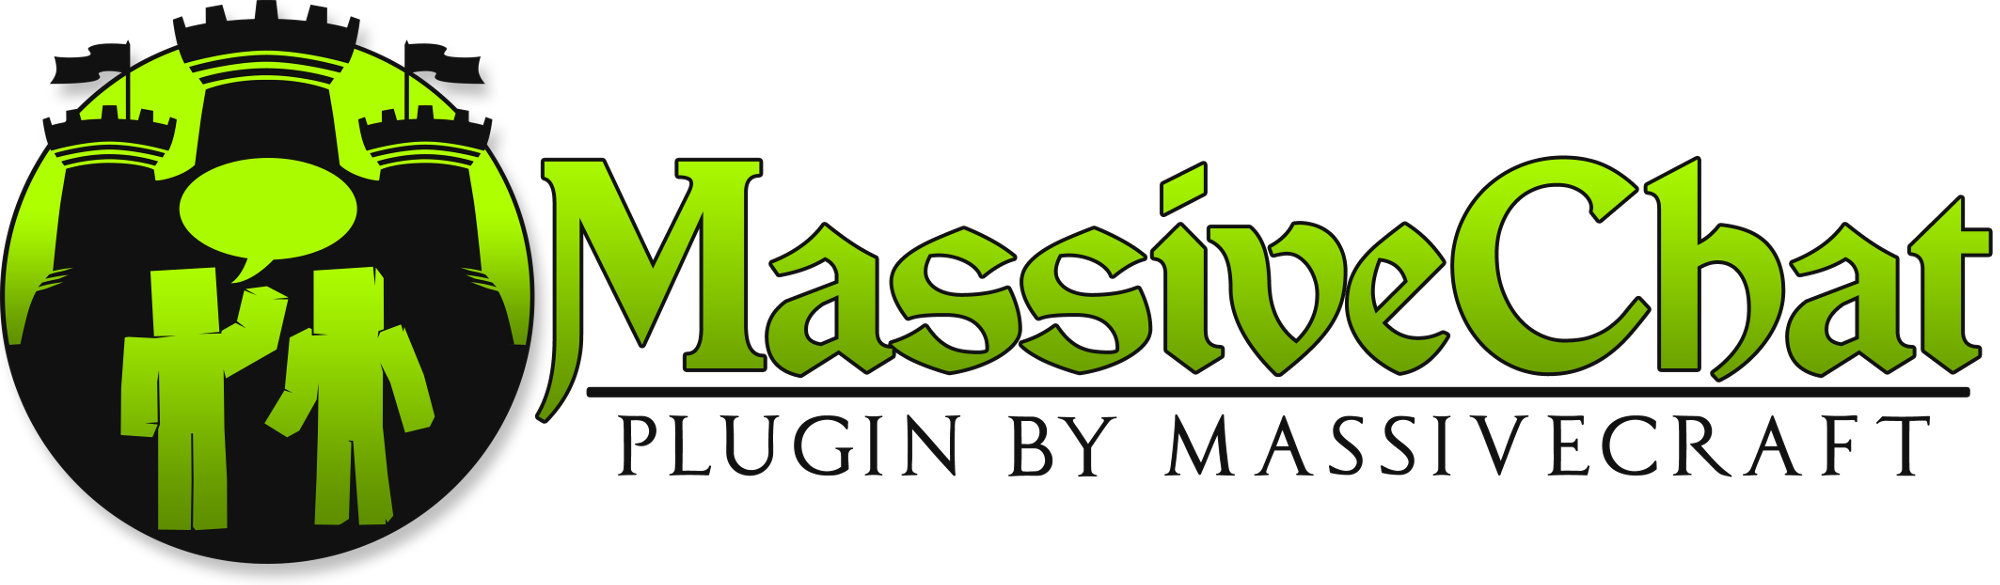 massivecraft-logotype-plugin-massivechat-2000